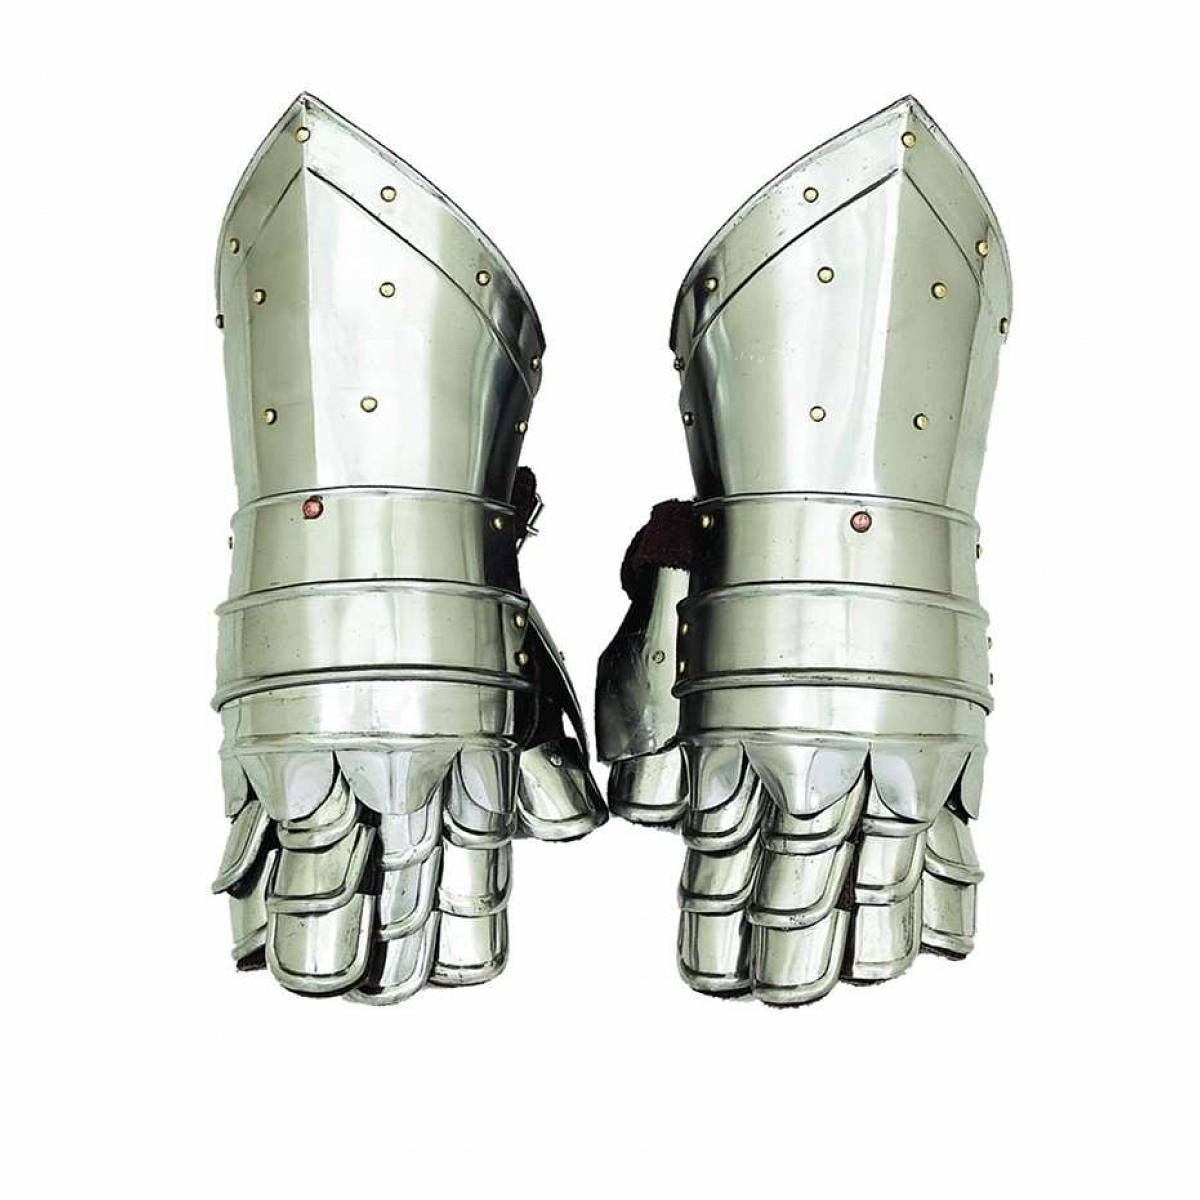 Woodland Imports Metal Armour Hand Gloves - 36302 for the knight in shining armor $80.